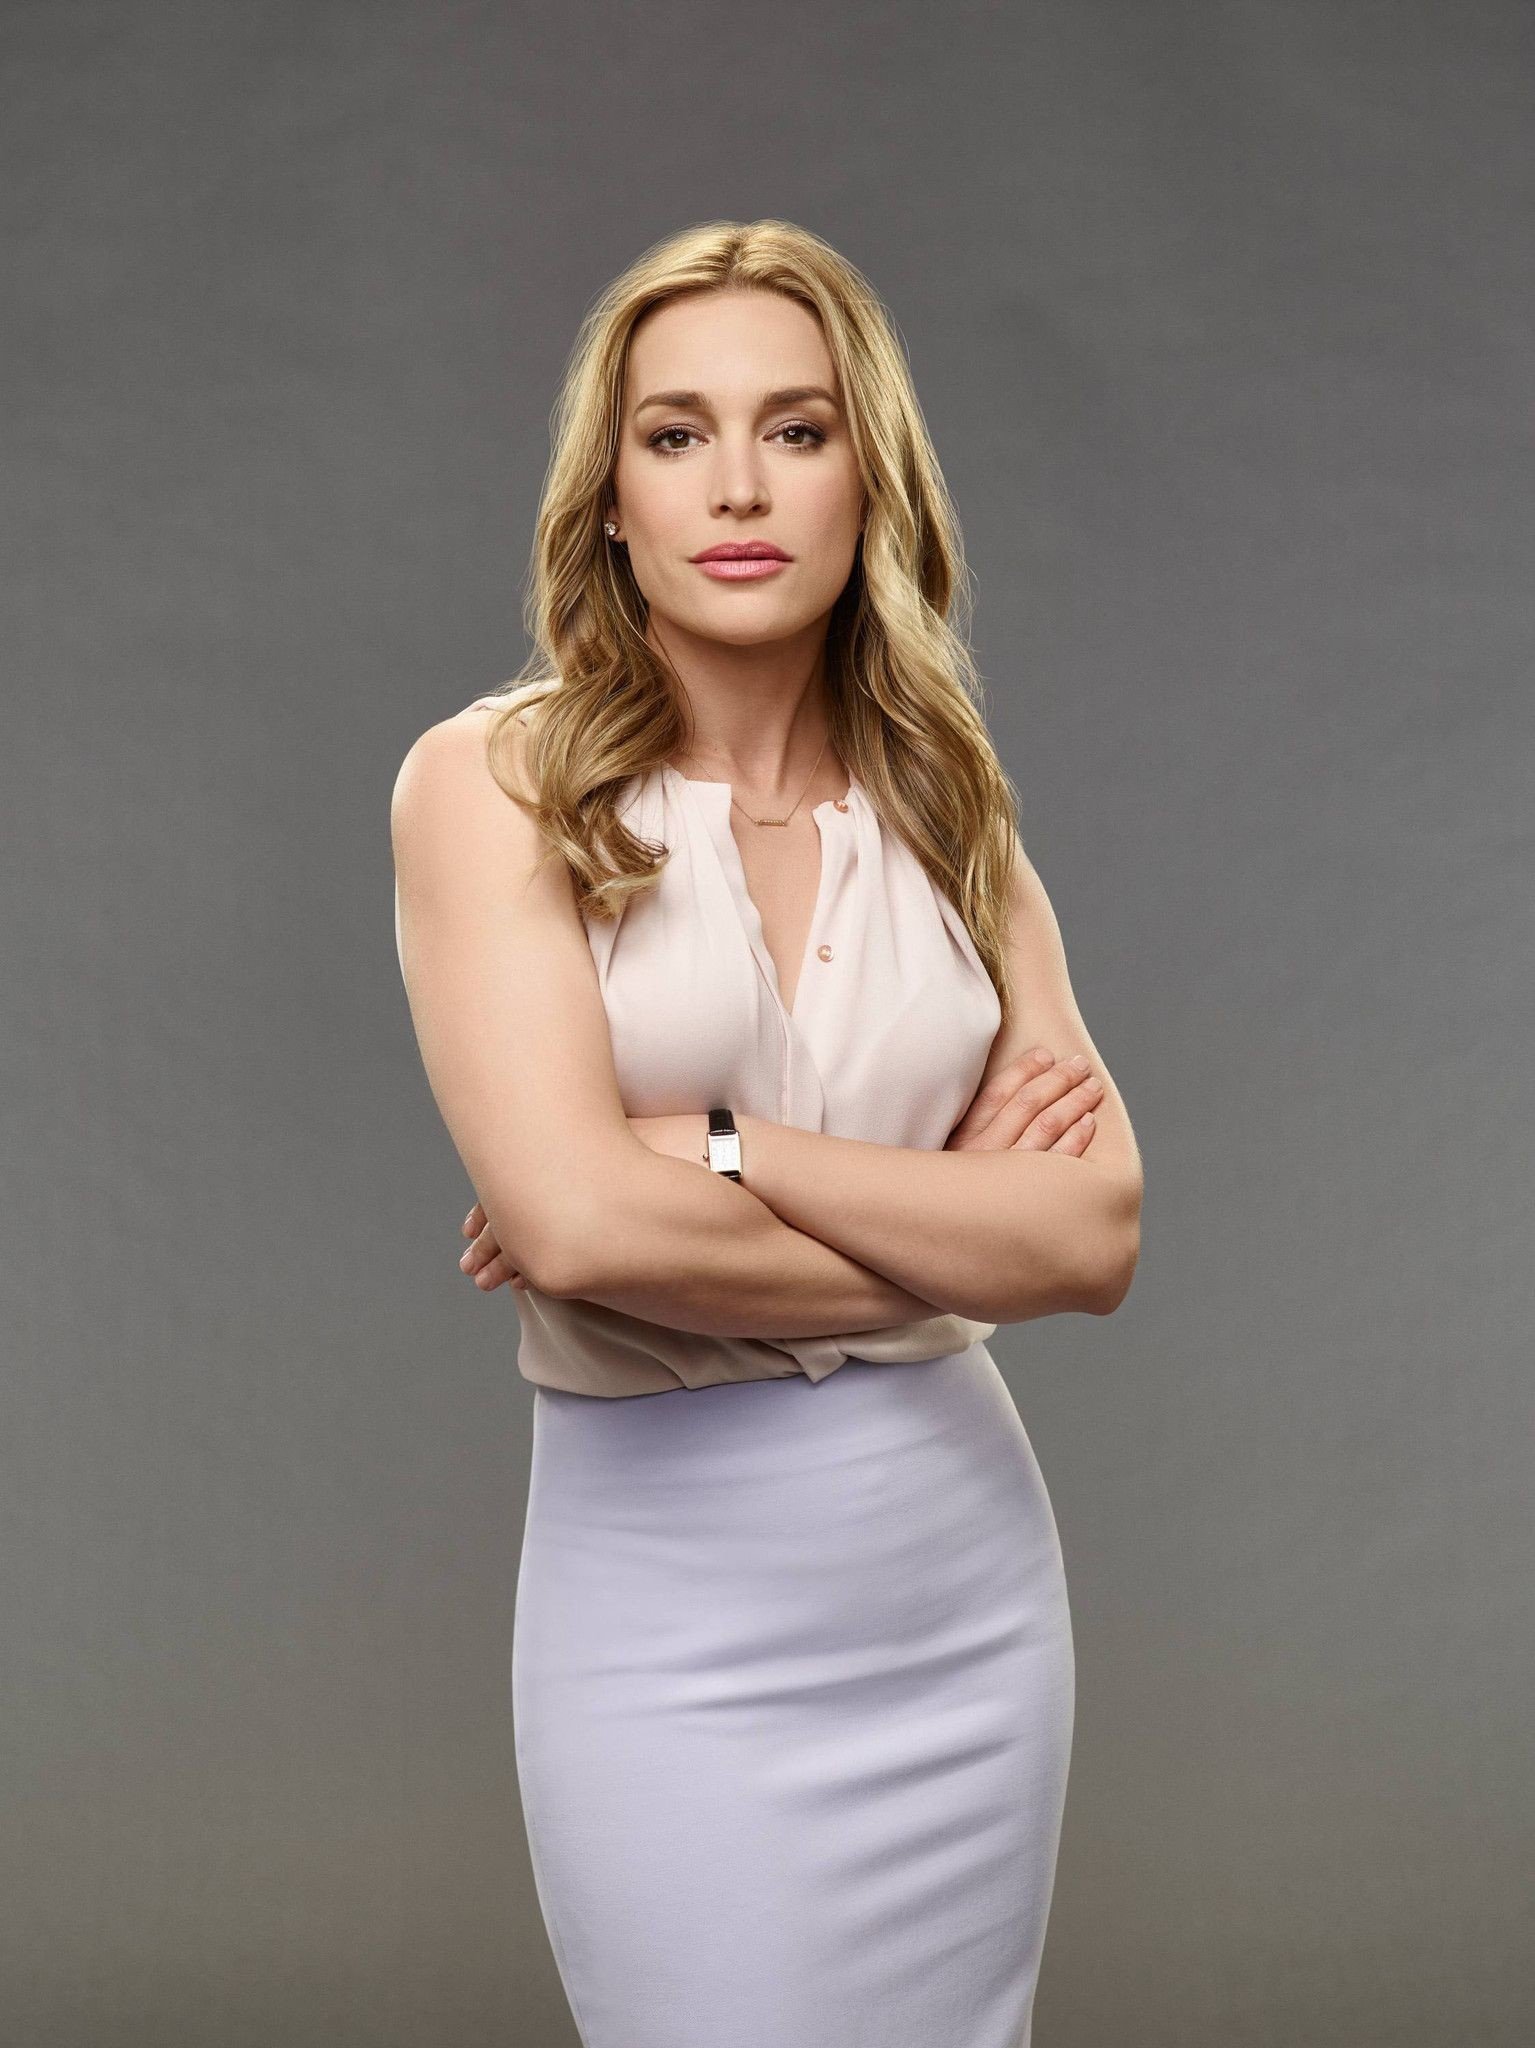 """Res: 1535x2048, from jaehakim.com: Since starring in the film """"Coyote Ugly,"""" Piper Perabo  has kept busy adding to a long resume of movies and television work."""